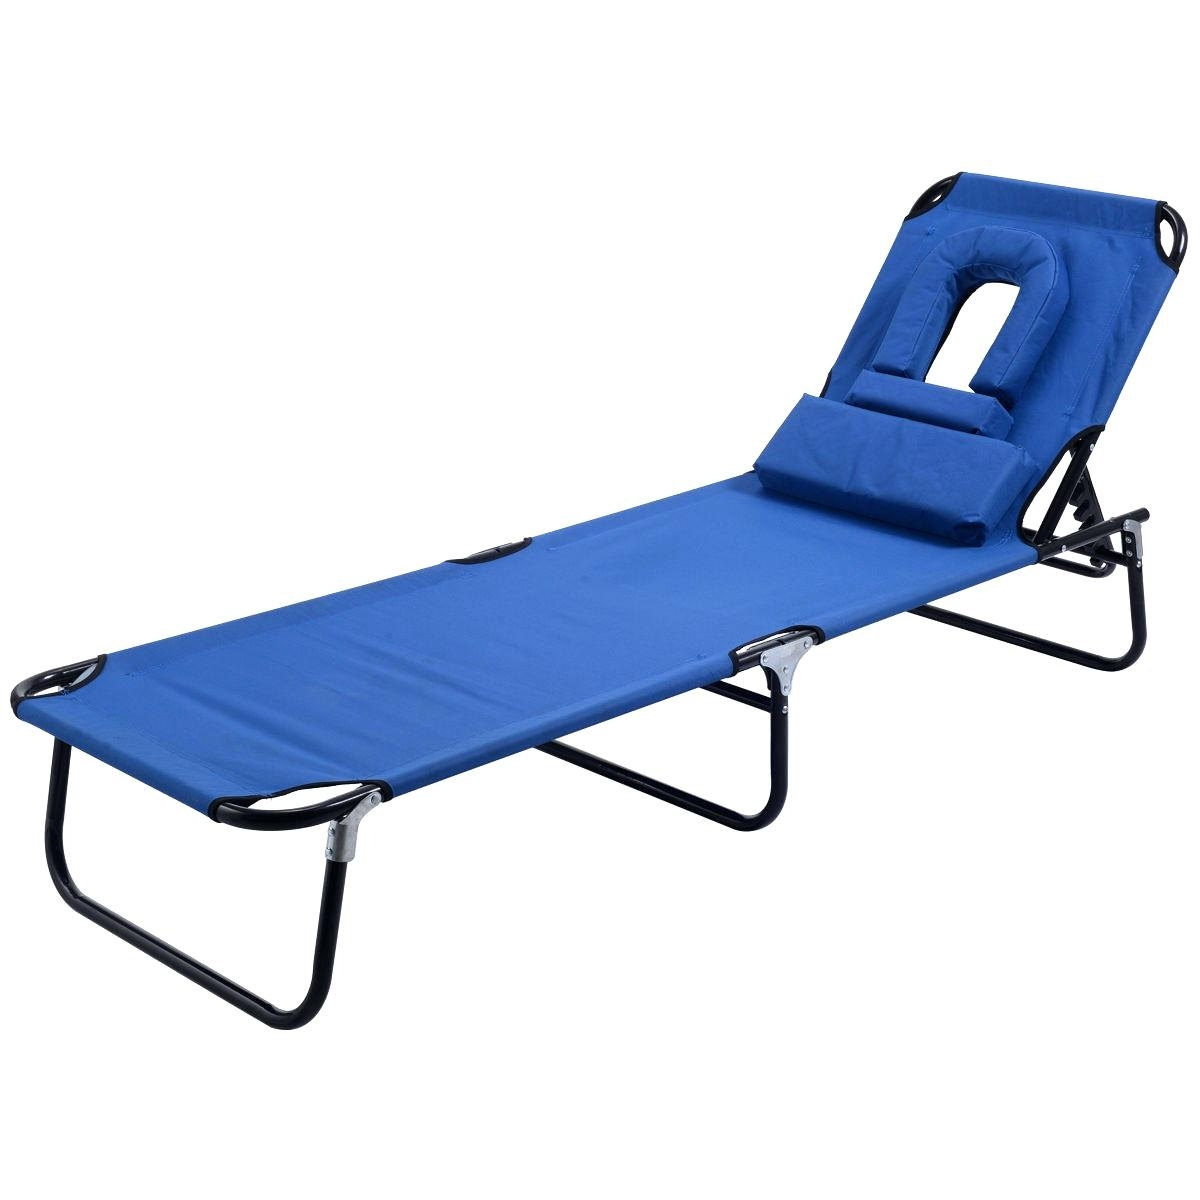 Maureen Outdoor Folding Chaise Lounge Chairs Pertaining To 2017 Articles With Maureen Outdoor Folding Chaise Lounge Chairs 2 Pack (View 9 of 15)